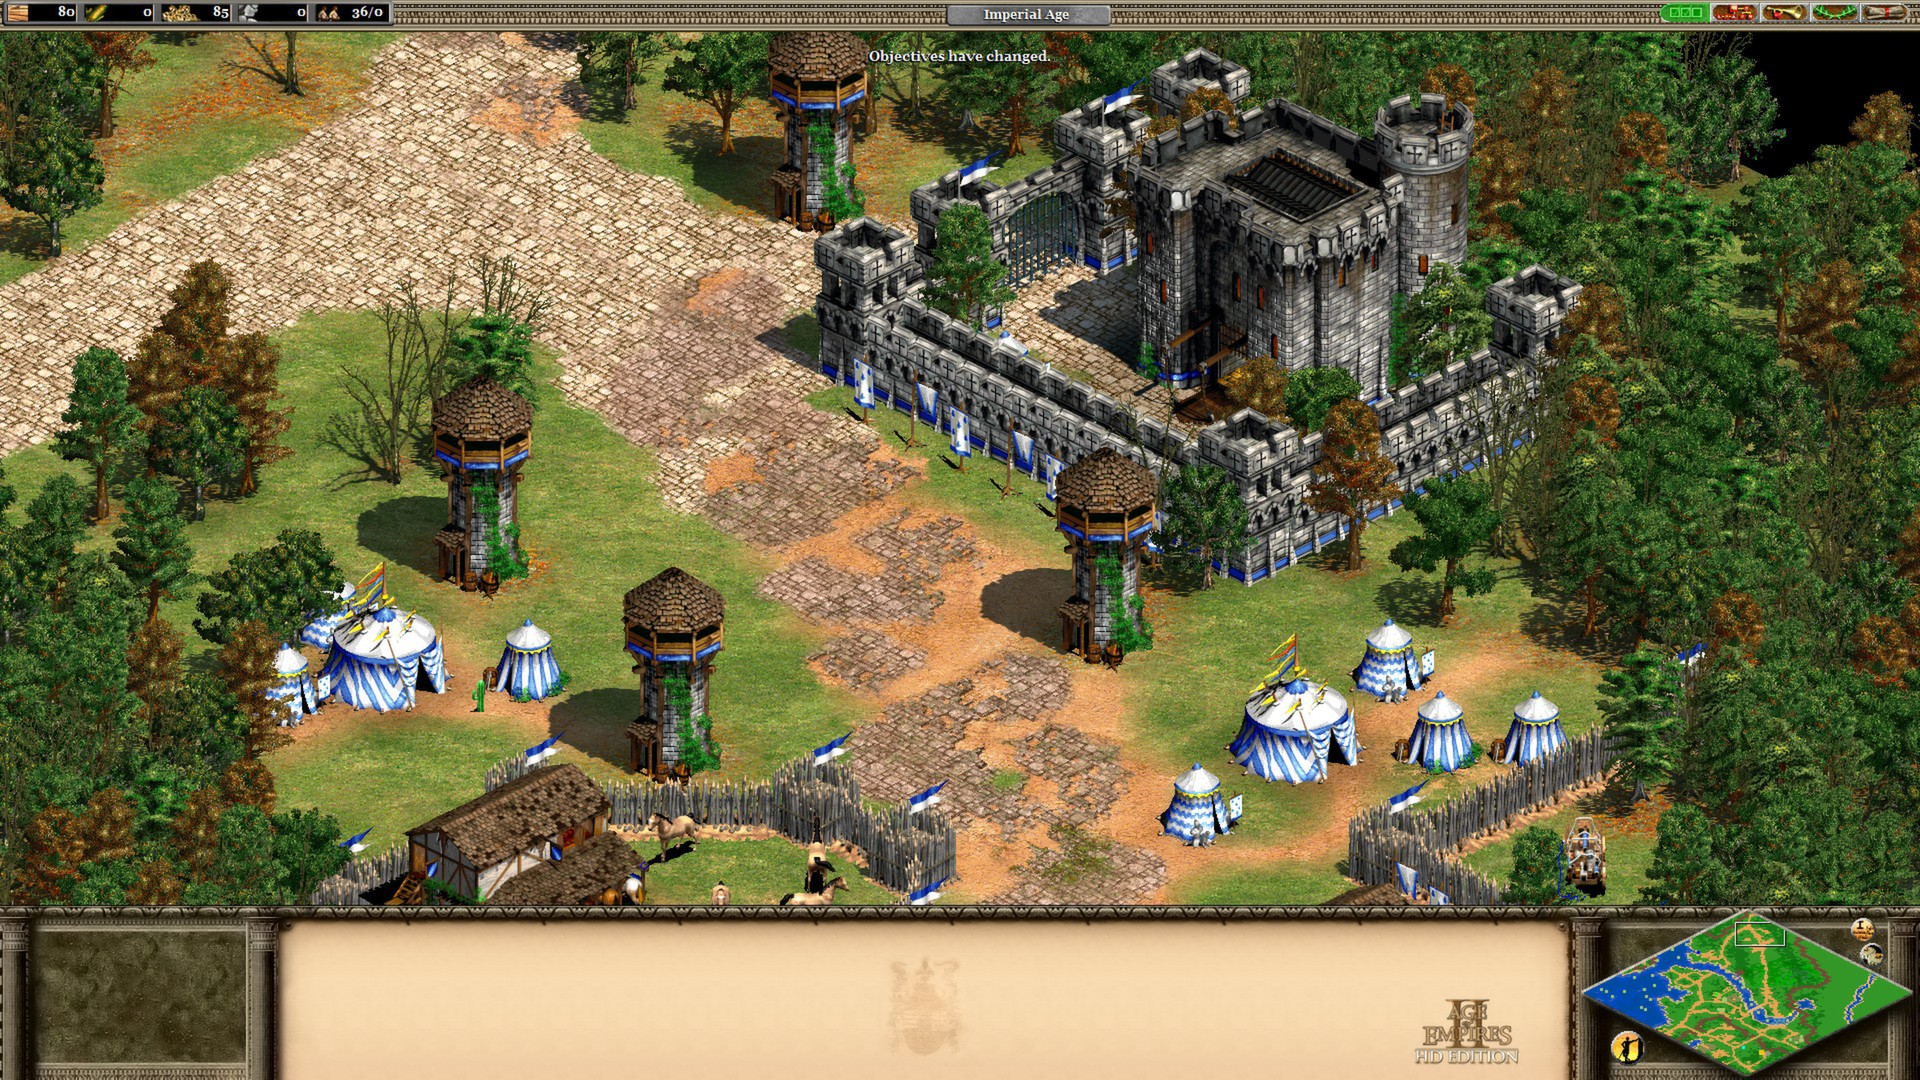 Age Of Empires Ii Hd On Steam High Definition Video Earth To Be Streamed Online